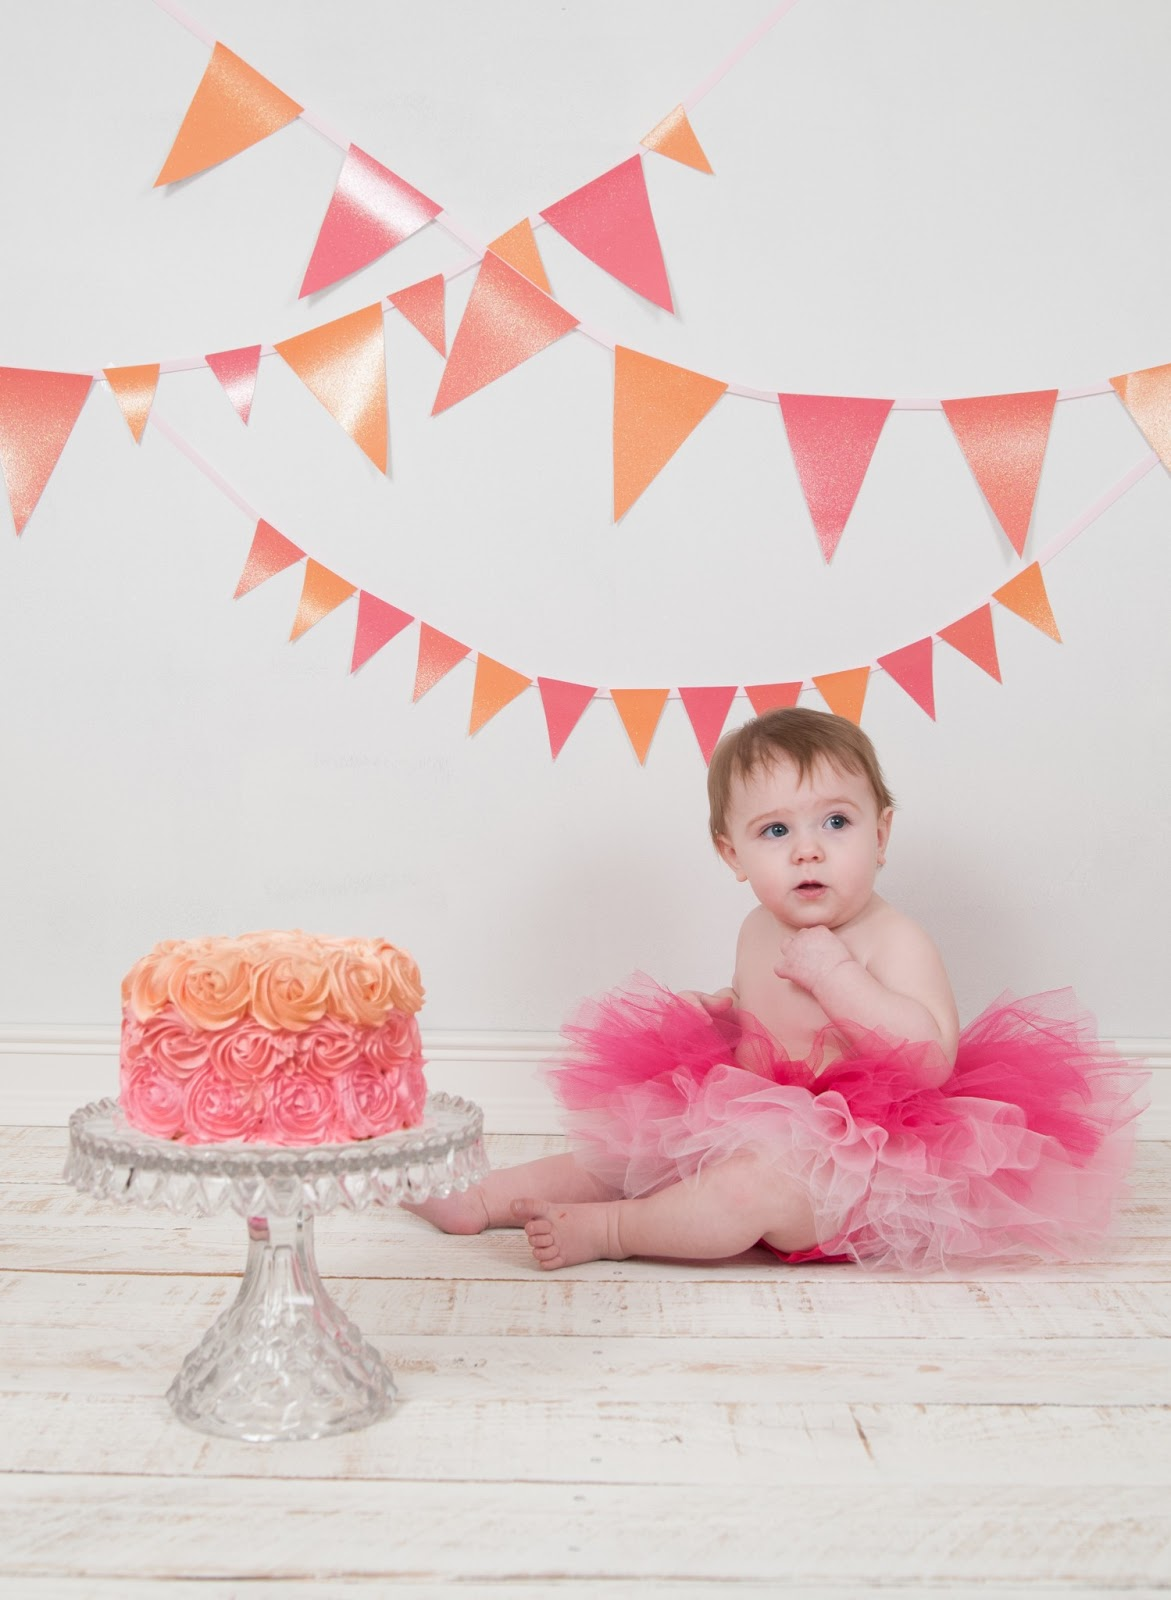 Cake smash photos first birth photos childrens photography puyallup